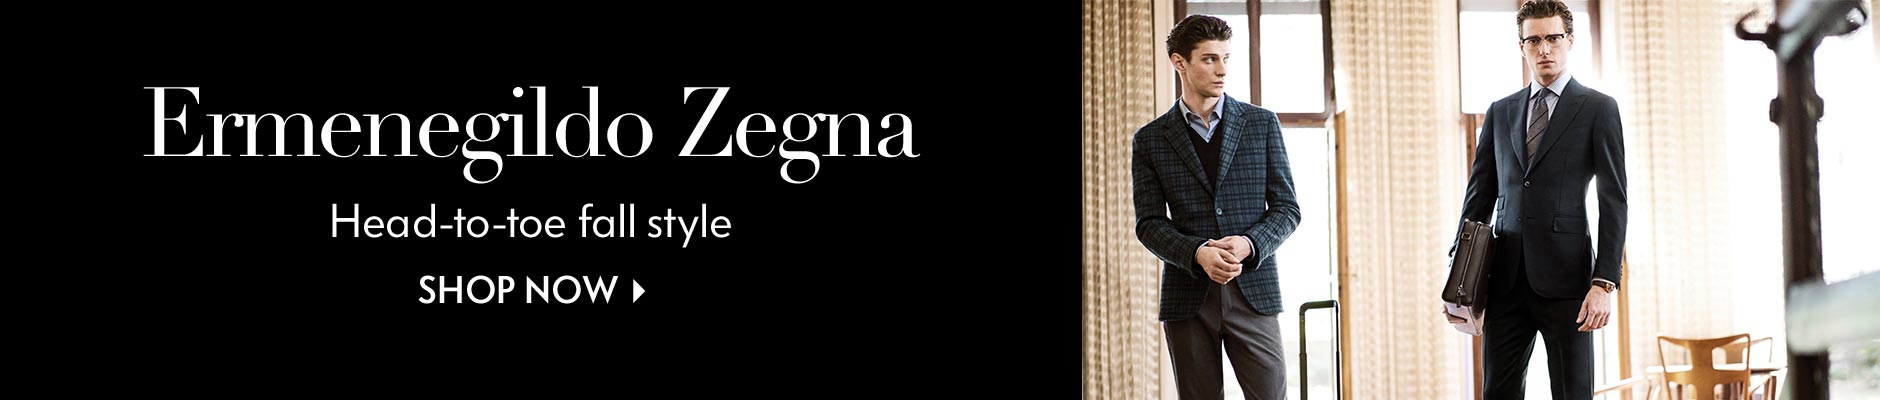 Ermenegildo Zegna: Head-to-toe fall style - Shop Now